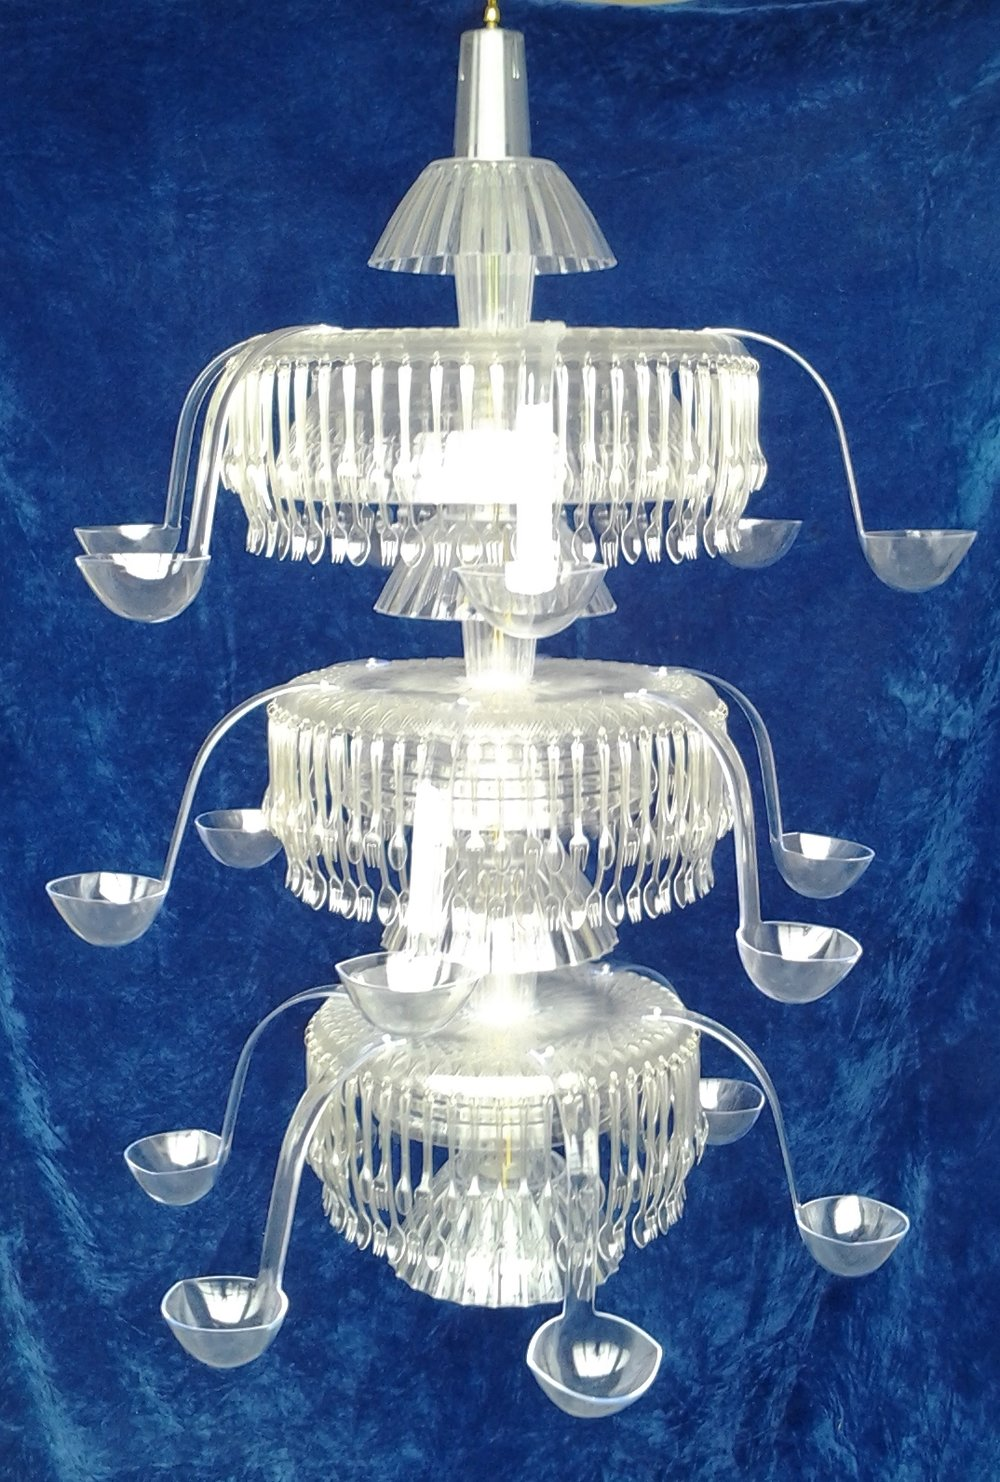 Eating Light - Chandelier made from dollar-store fake crystal tableware. Concept, design, fabrication, and installation.